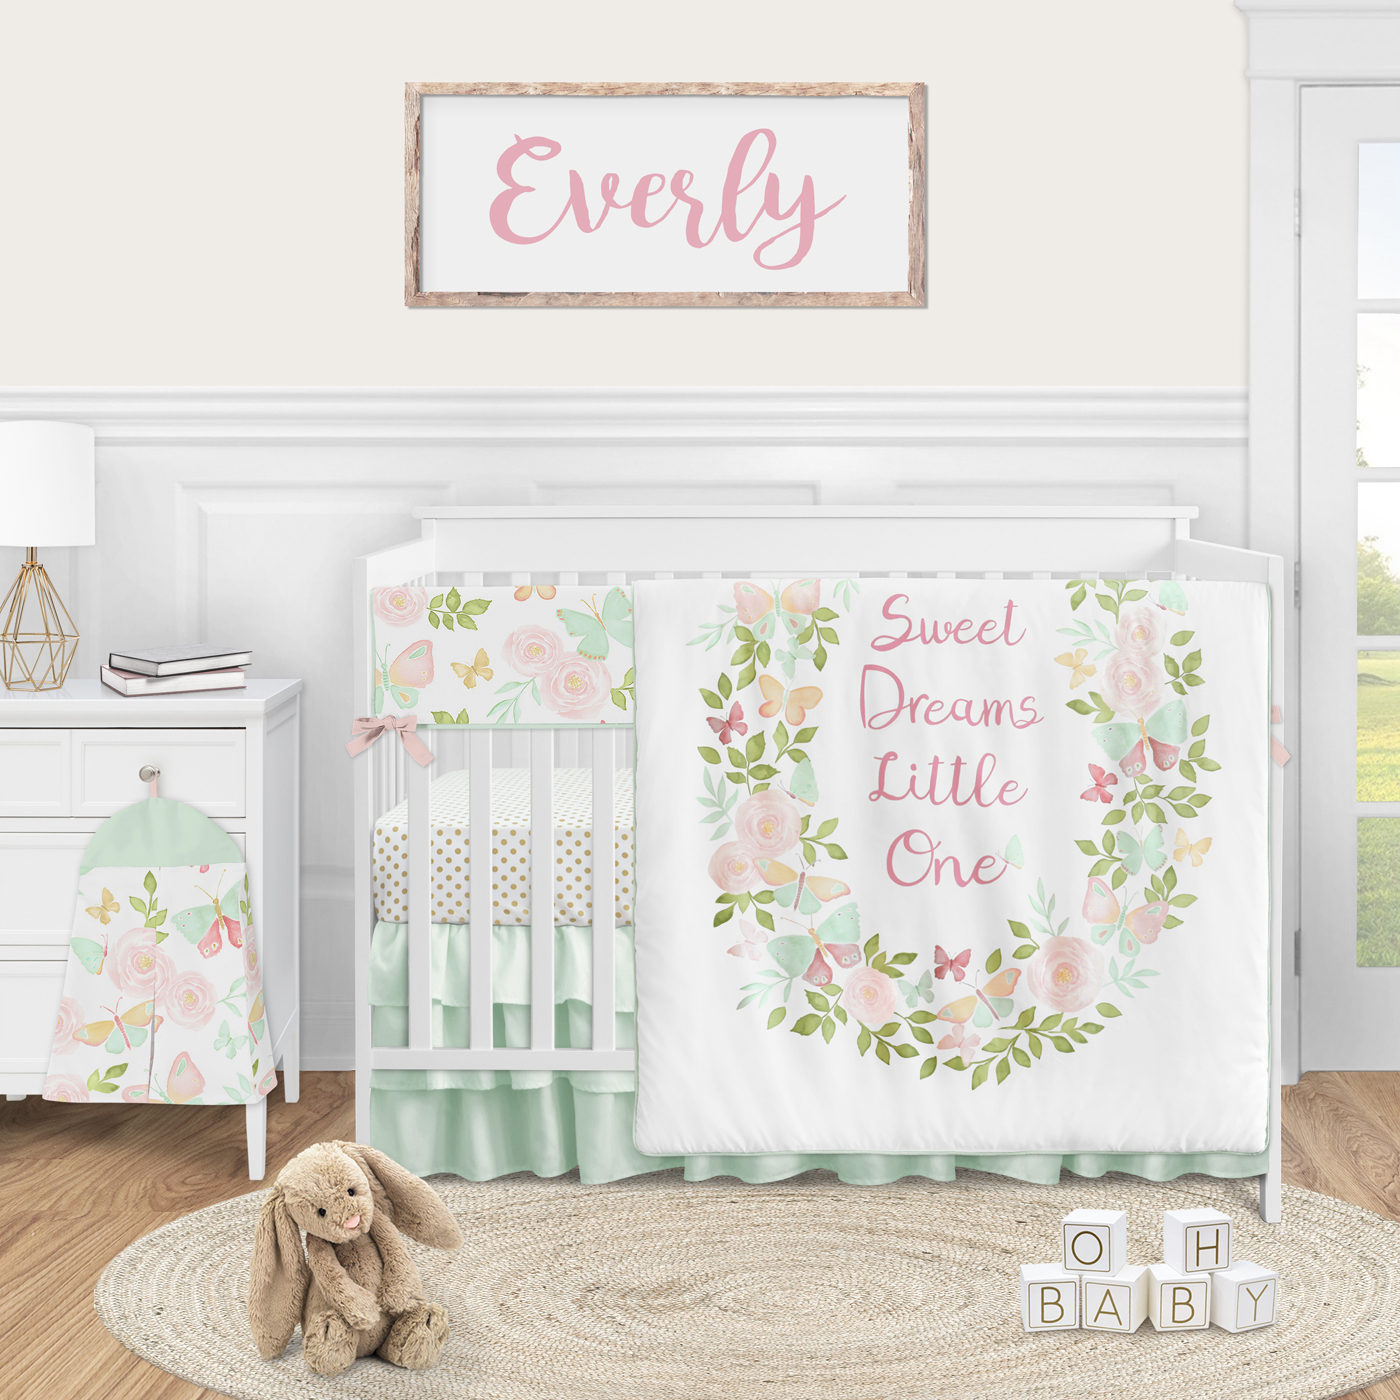 Sweet Jojo Designs Butterfly Floral Rose Large Peel and Stick Wall Decal Stickers Art Nursery Decor Mural Blush Pink Set of 4 Sheets Mint and White Shabby Chic Watercolor Boho Butterflies Garden